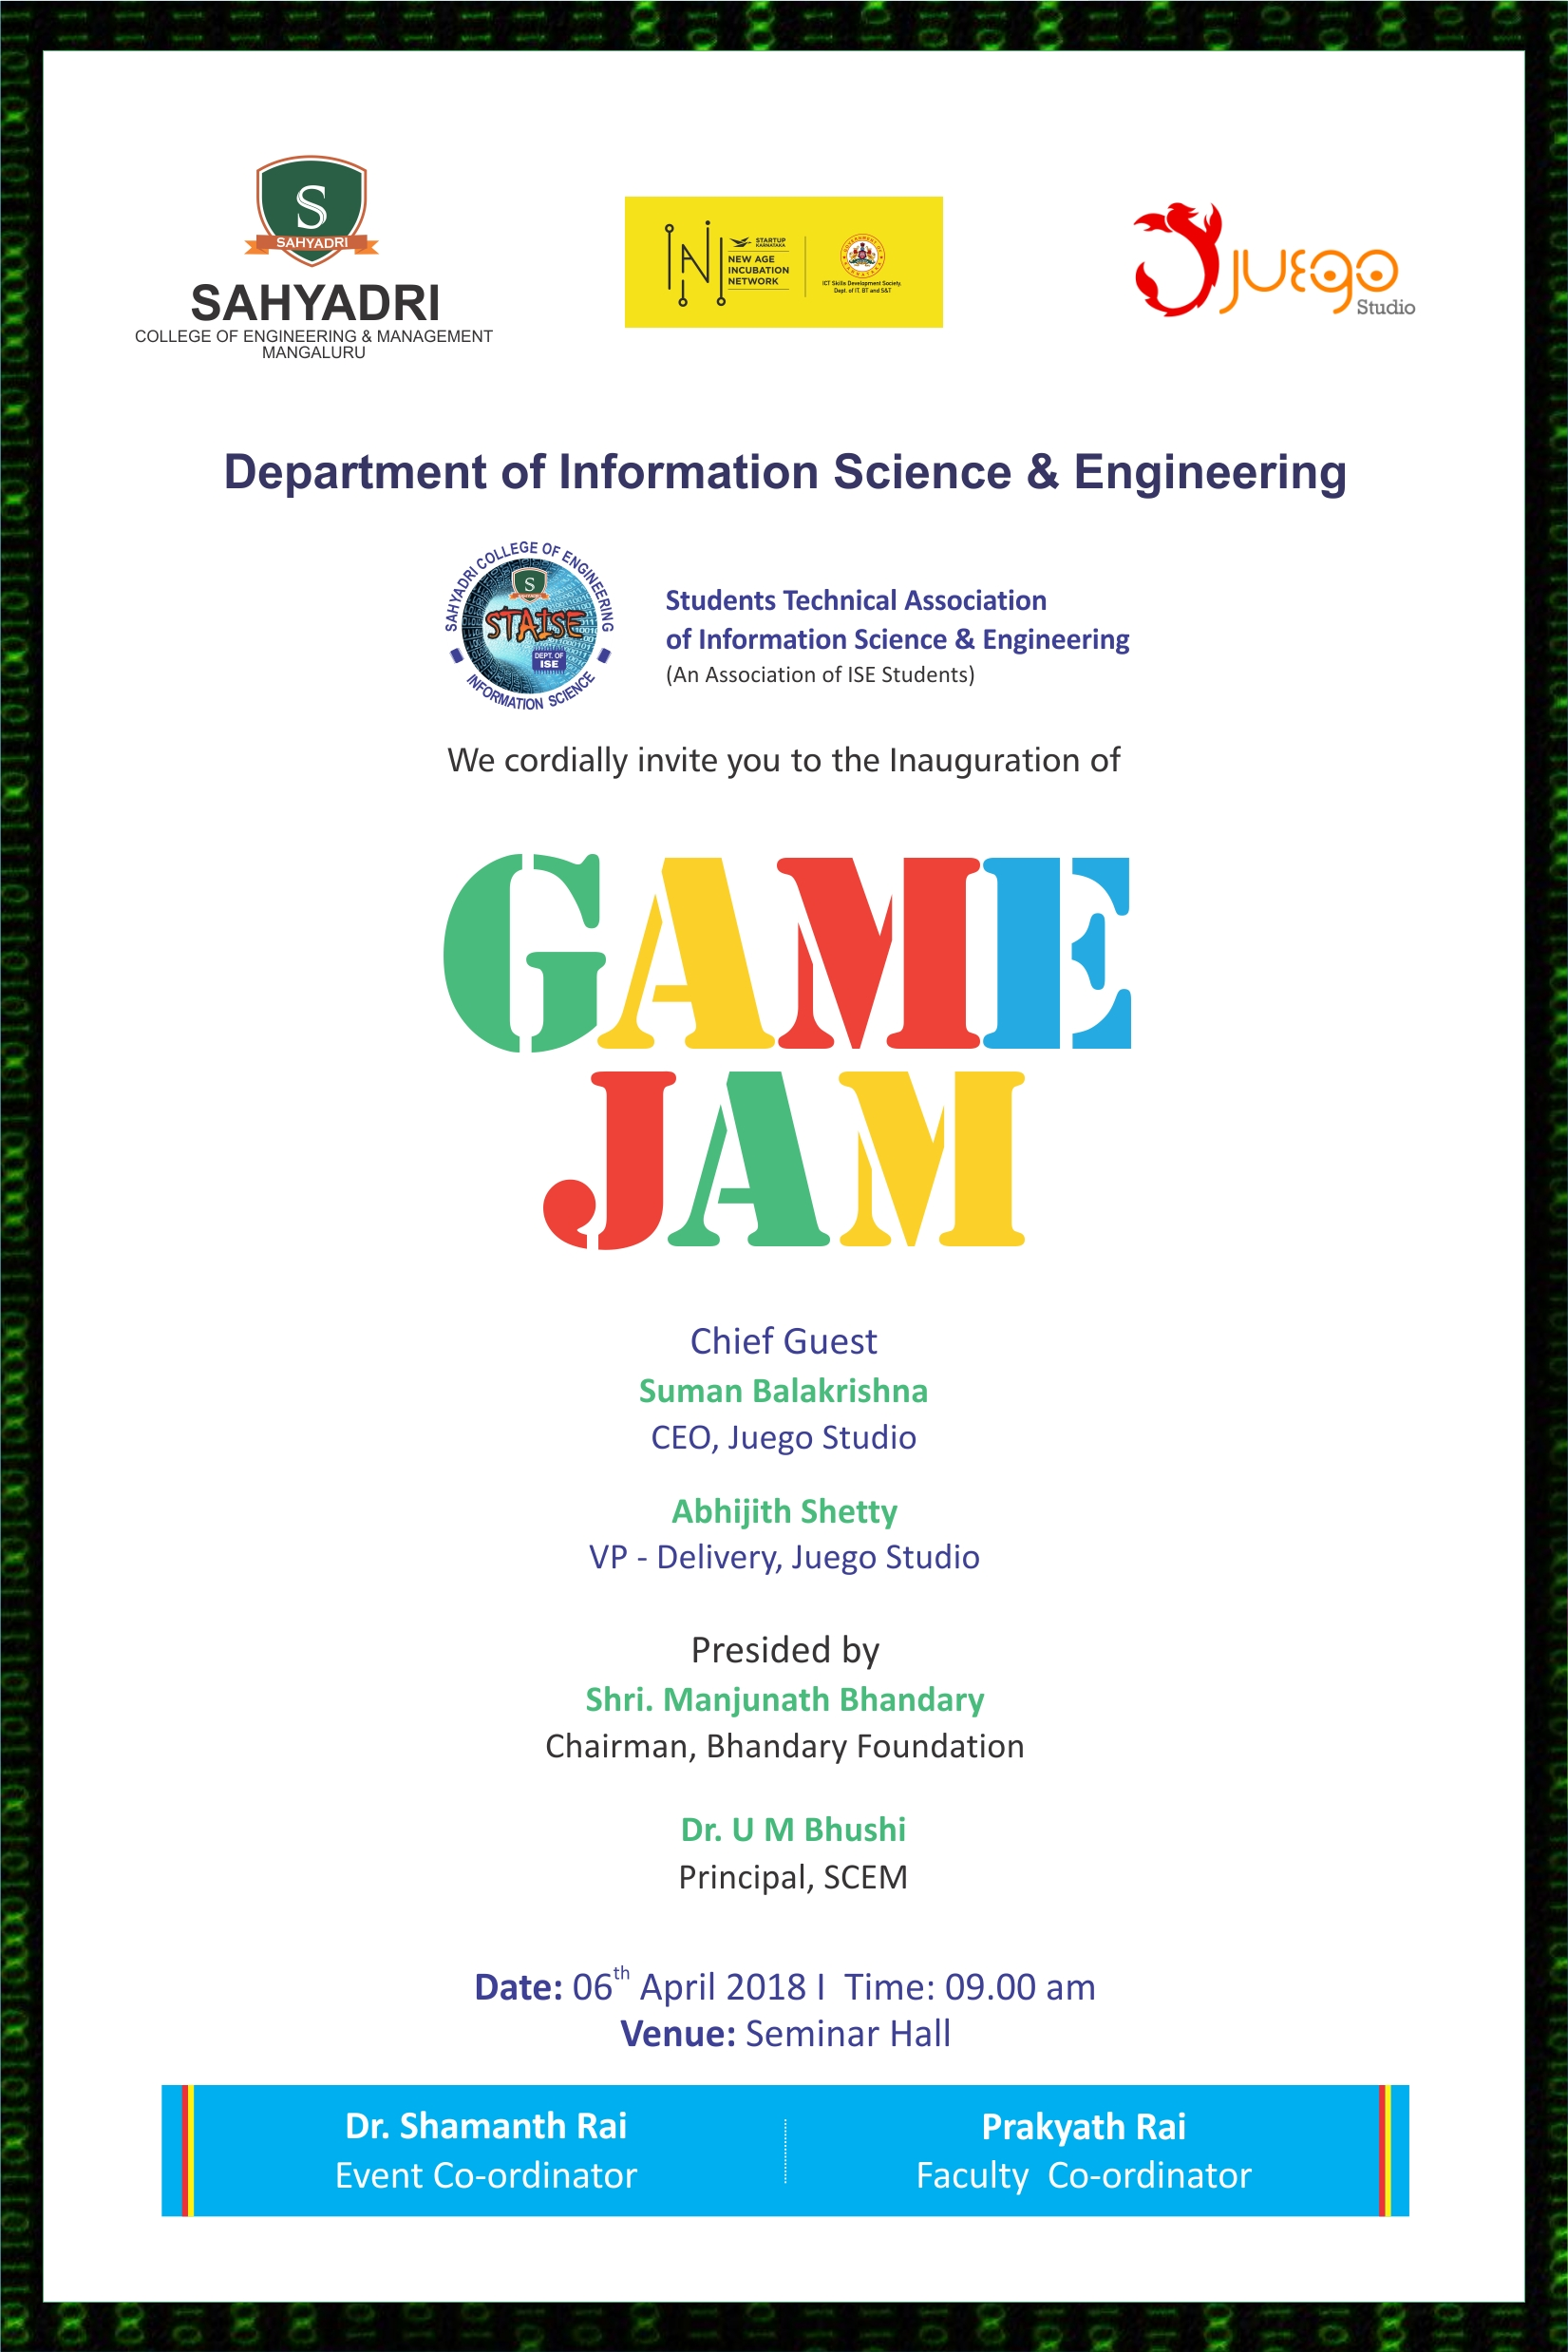 GAME JAM - A 24 Hour Hackathon from 6th April 9AM